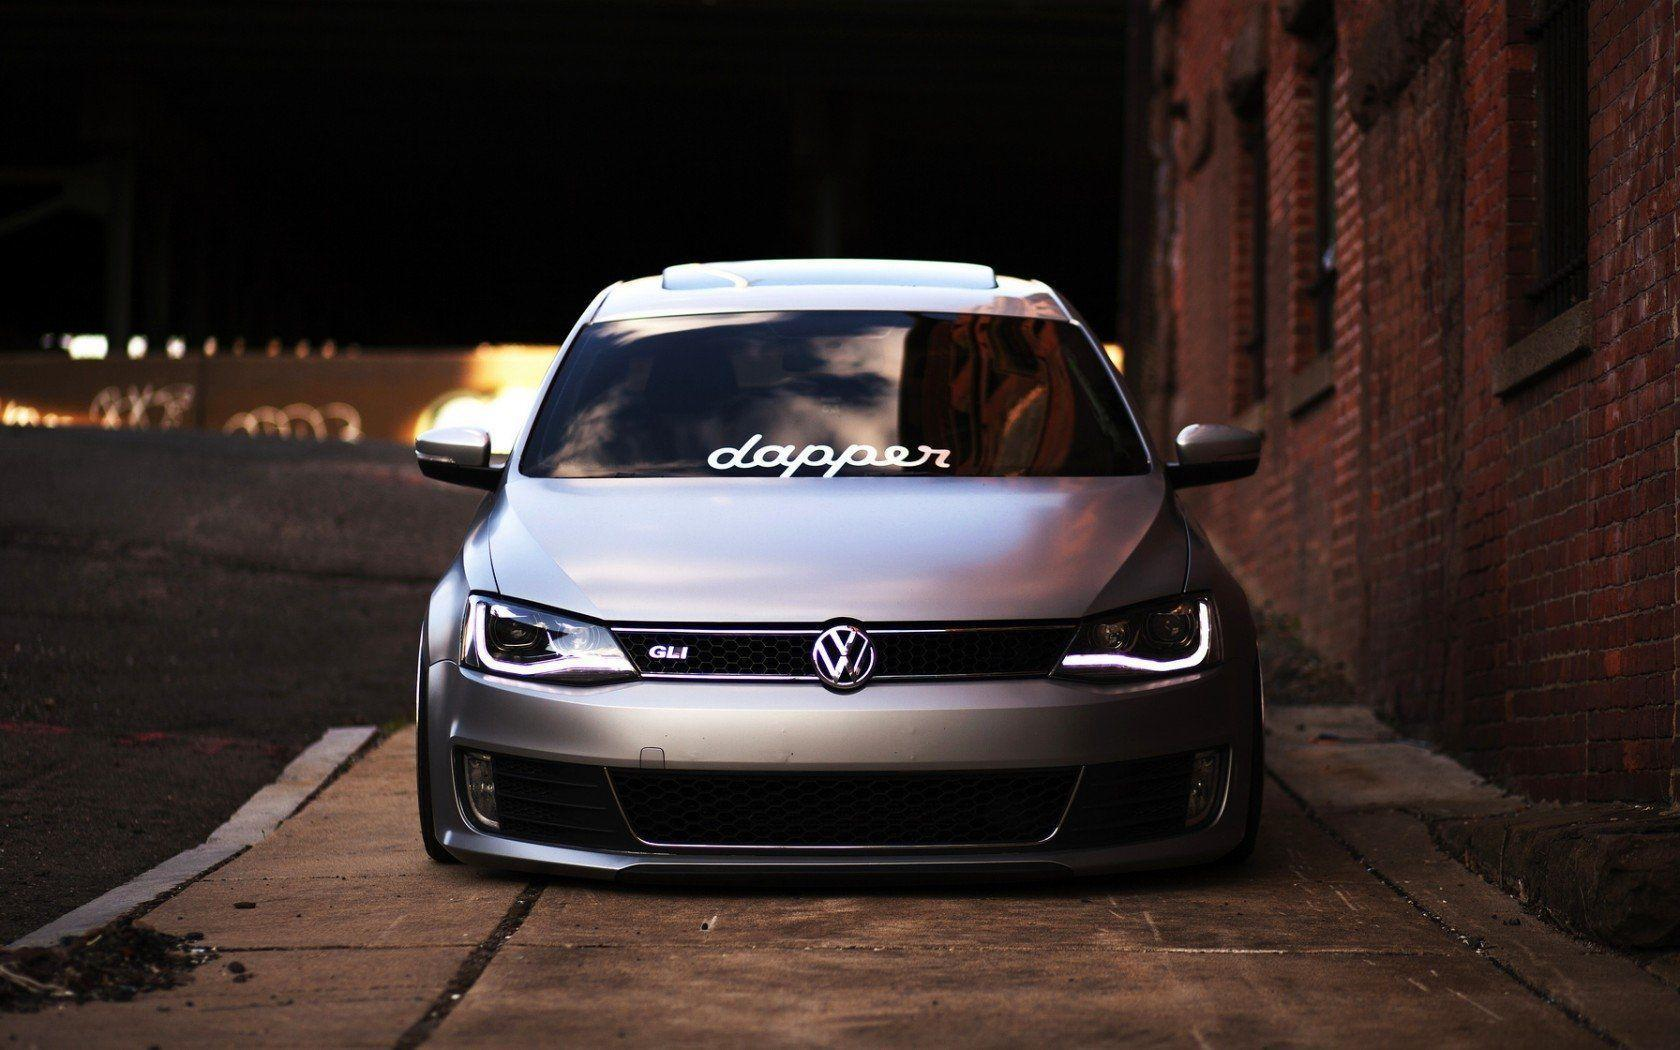 39 Volkswagen Golf HD Wallpapers | Background Images - Wallpaper Abyss